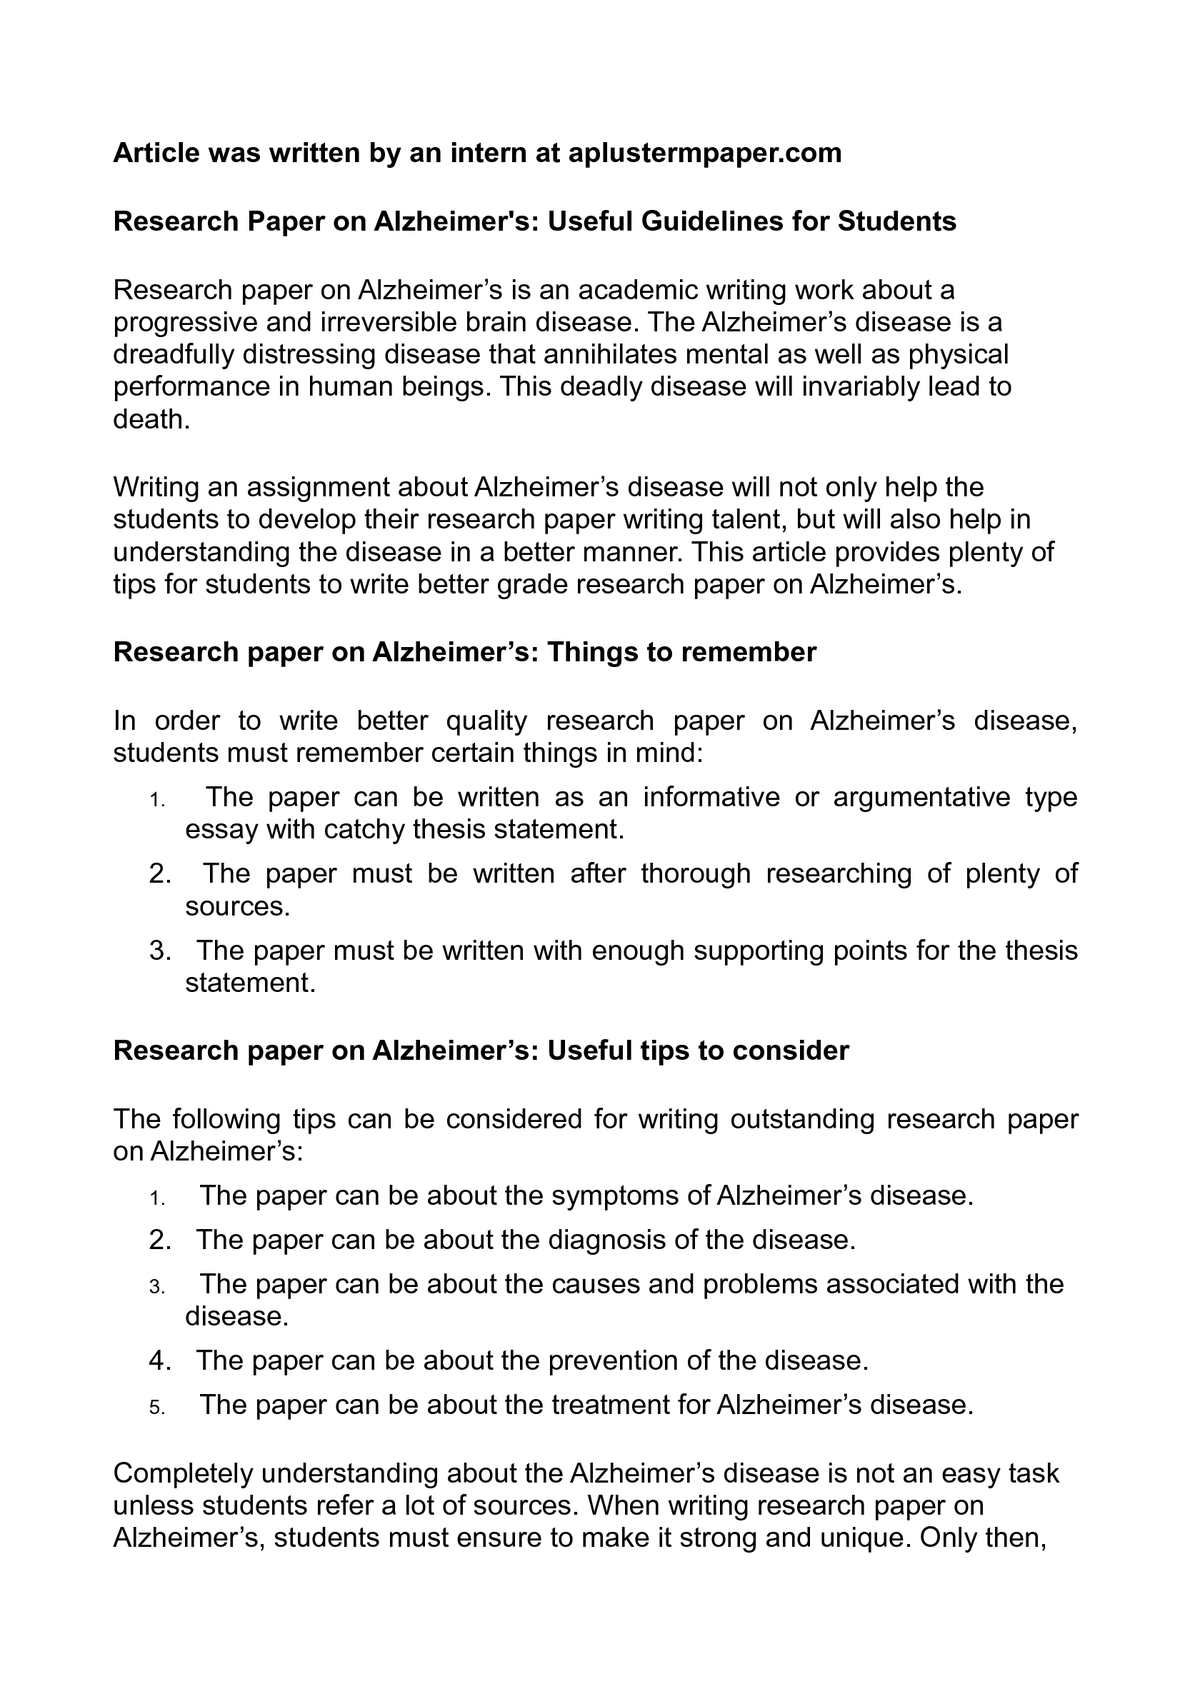 009 Research Paper Thesis For Wonderful A Statement Generator Career On Schizophrenia Full